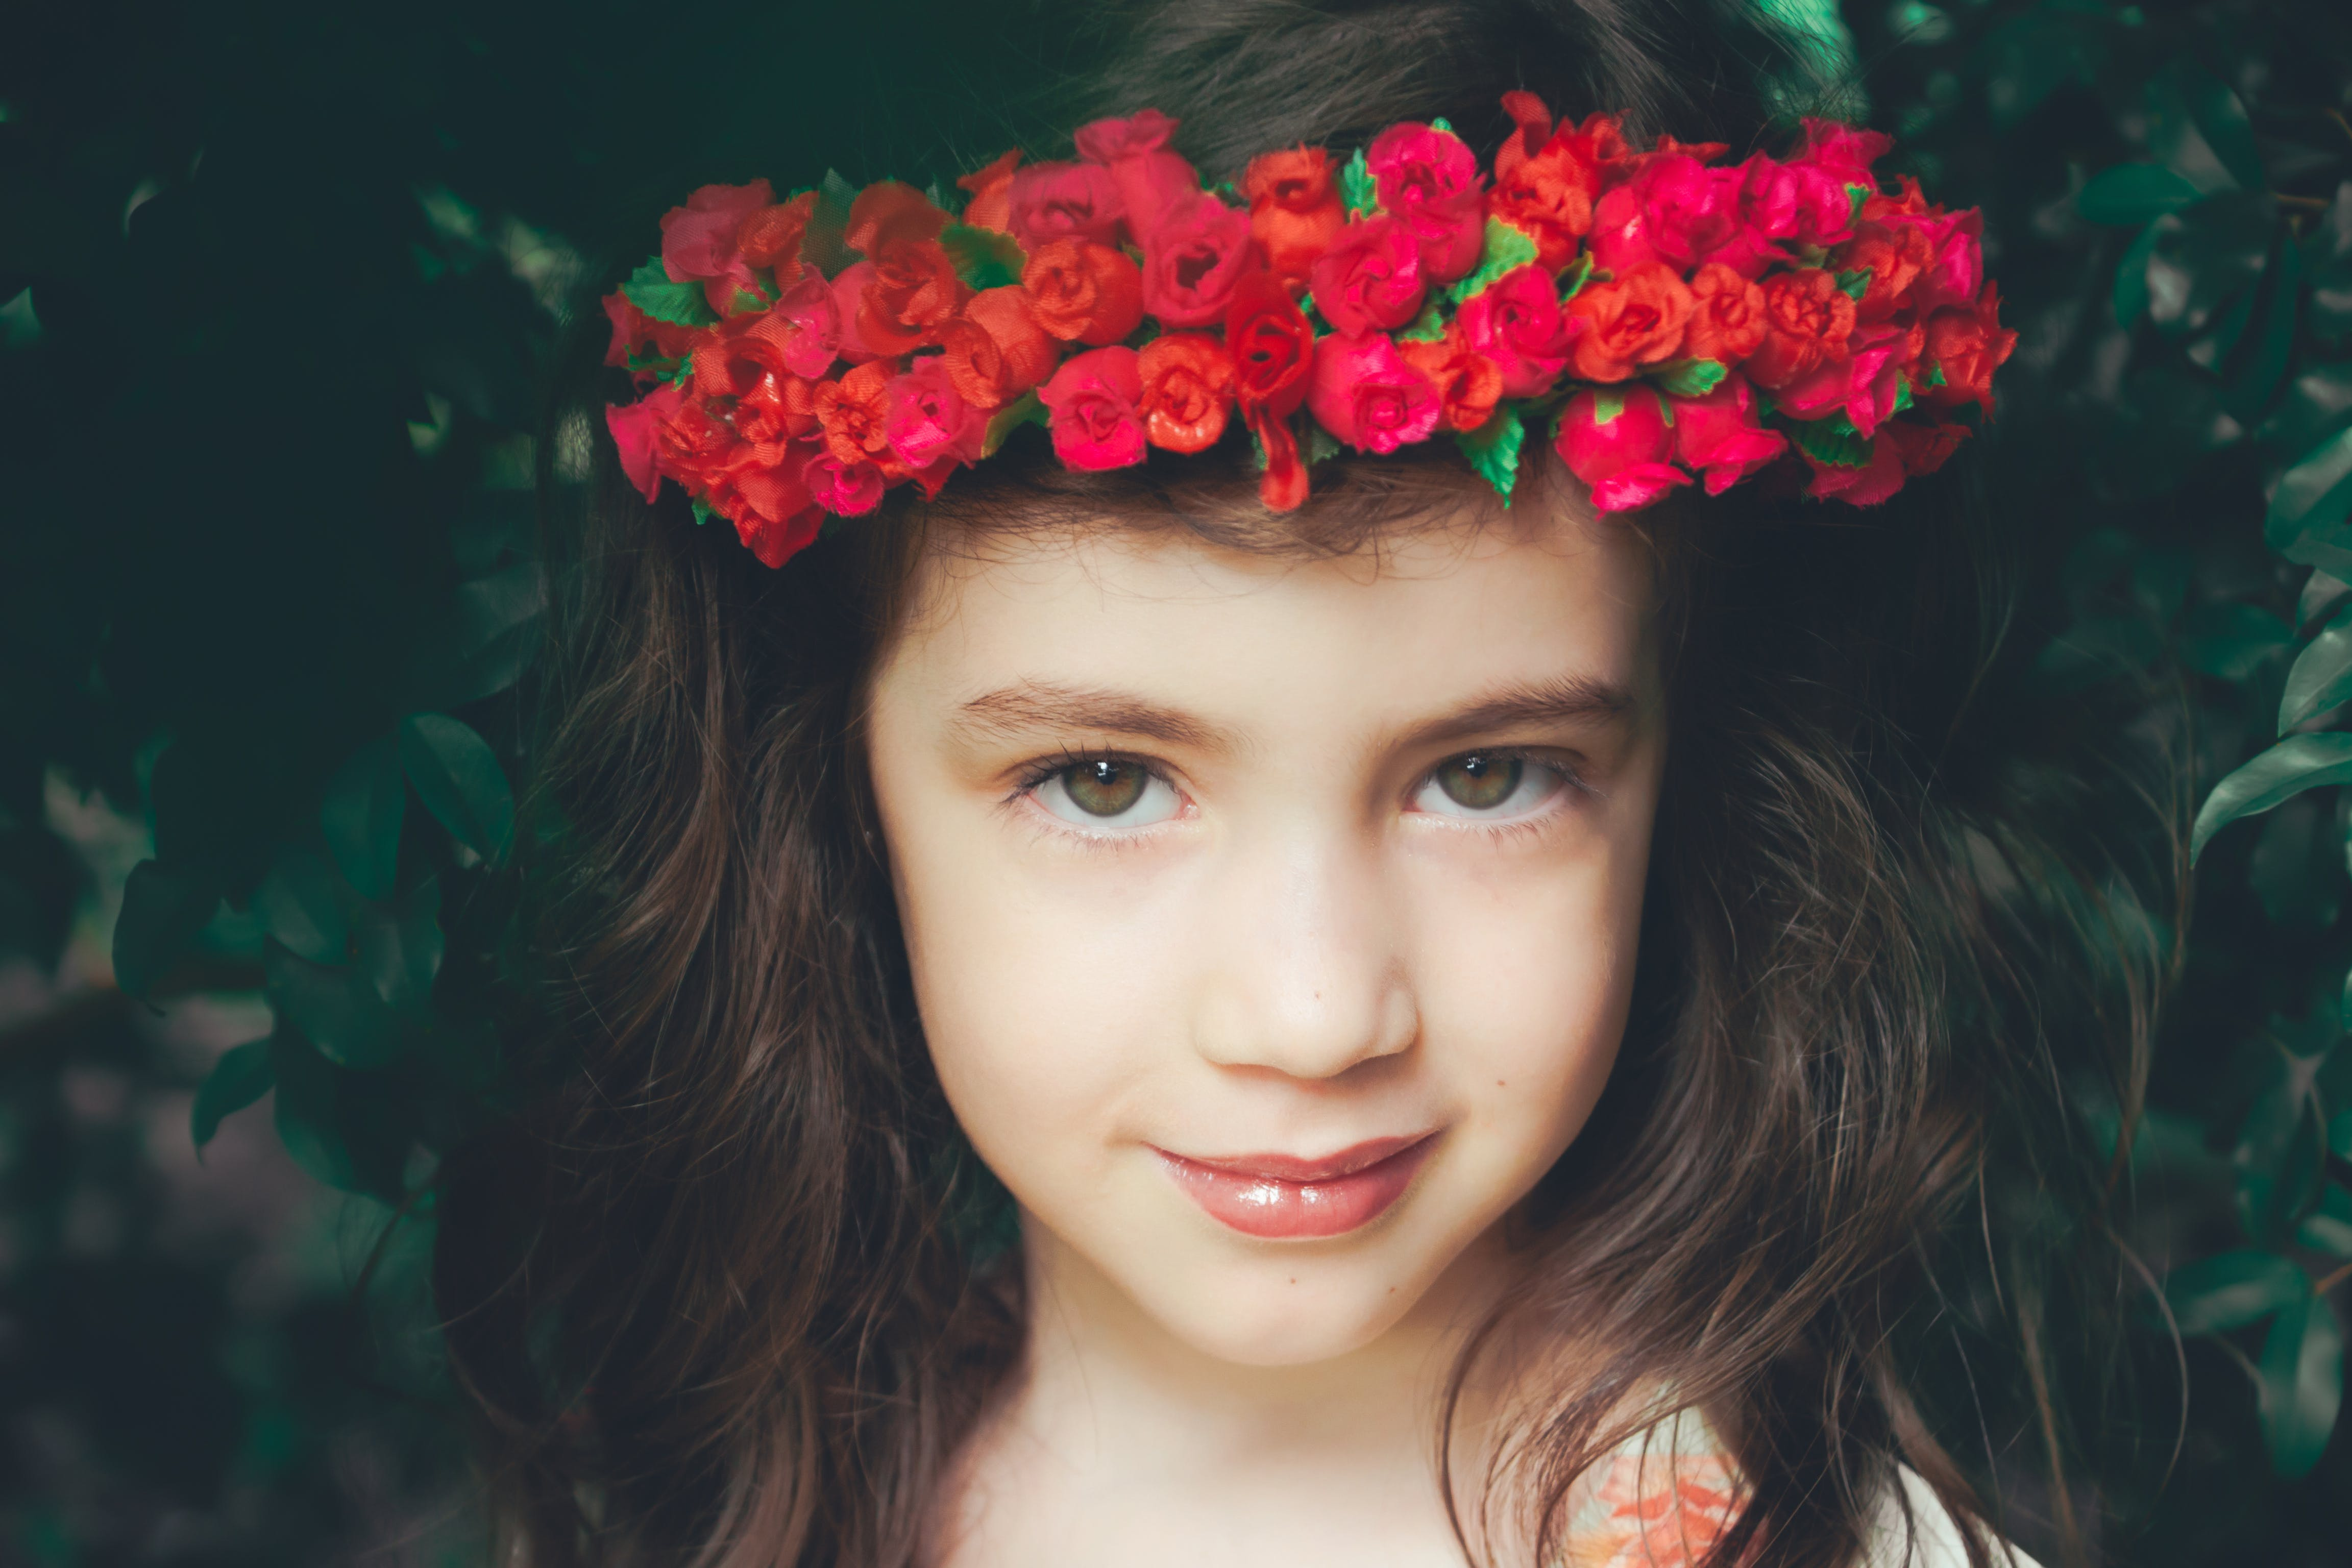 Girl Wearing Red Flower Headband